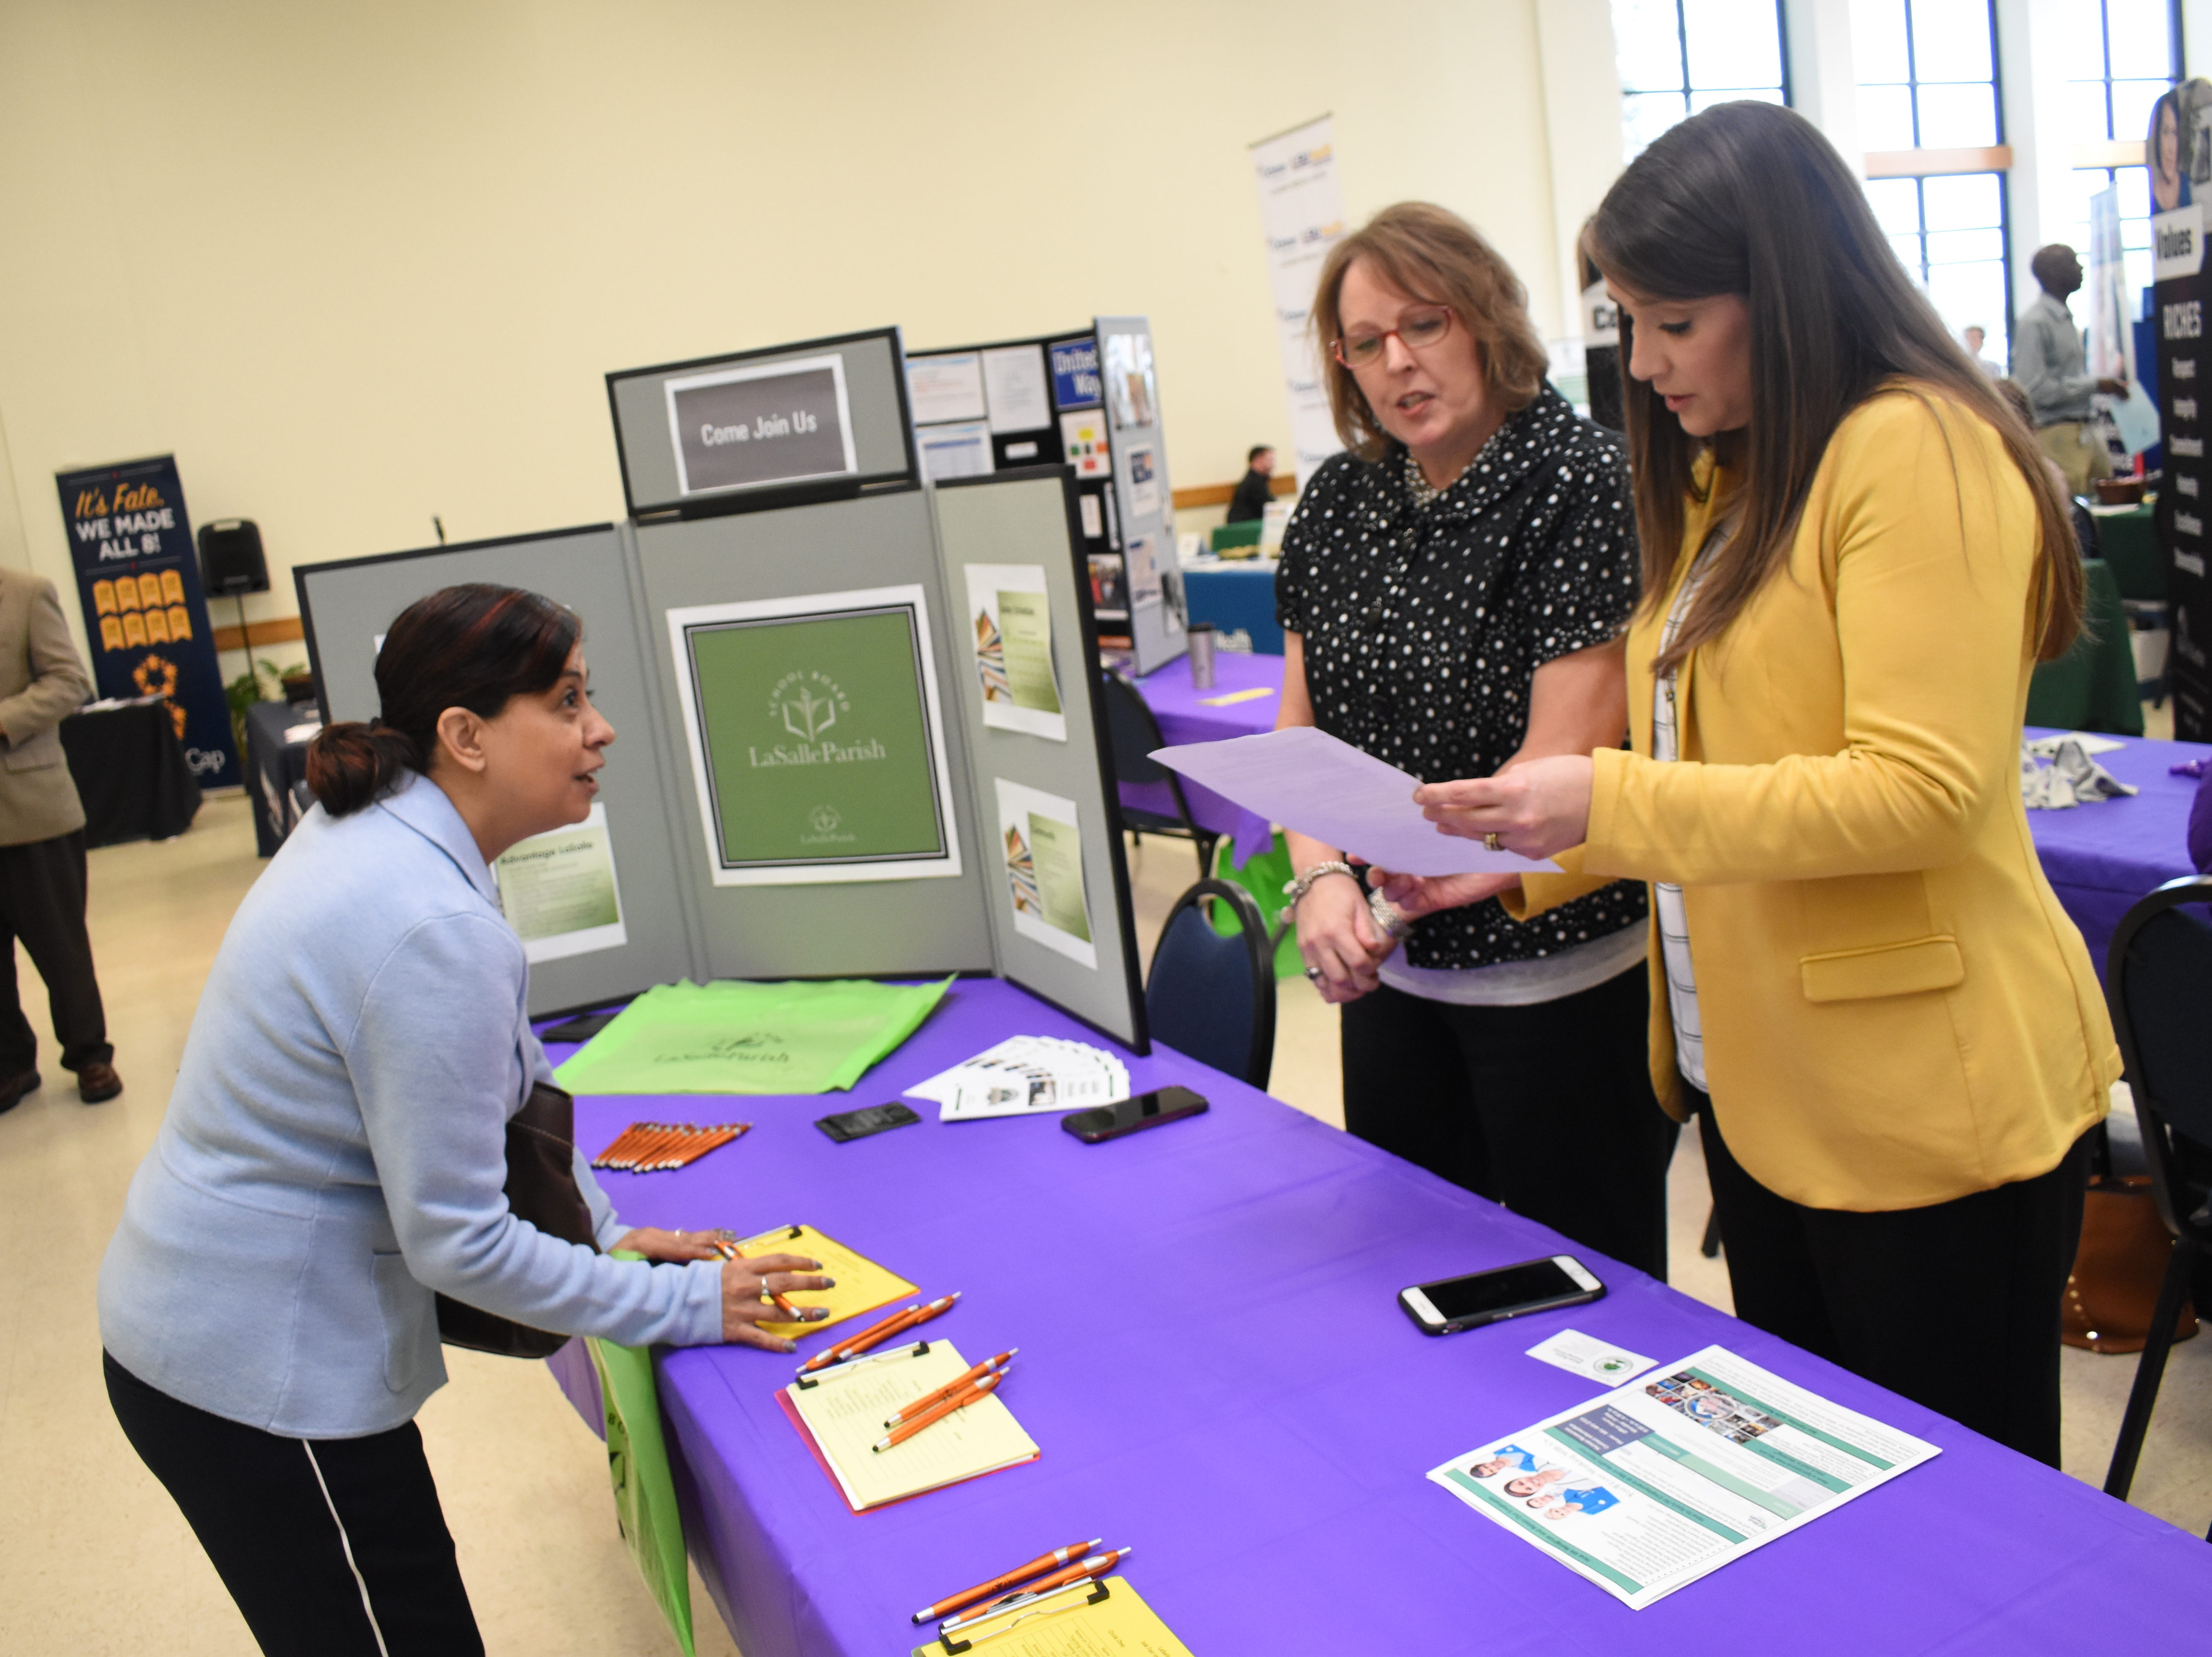 LSUA hosted their Spring Career Fair Tuesday, March 12, 2019 on the LSUA campus. About 40 businesses such as those involved in education, health care, non-profits and law enforcement were on hand to talk to students and others about job opportunities.